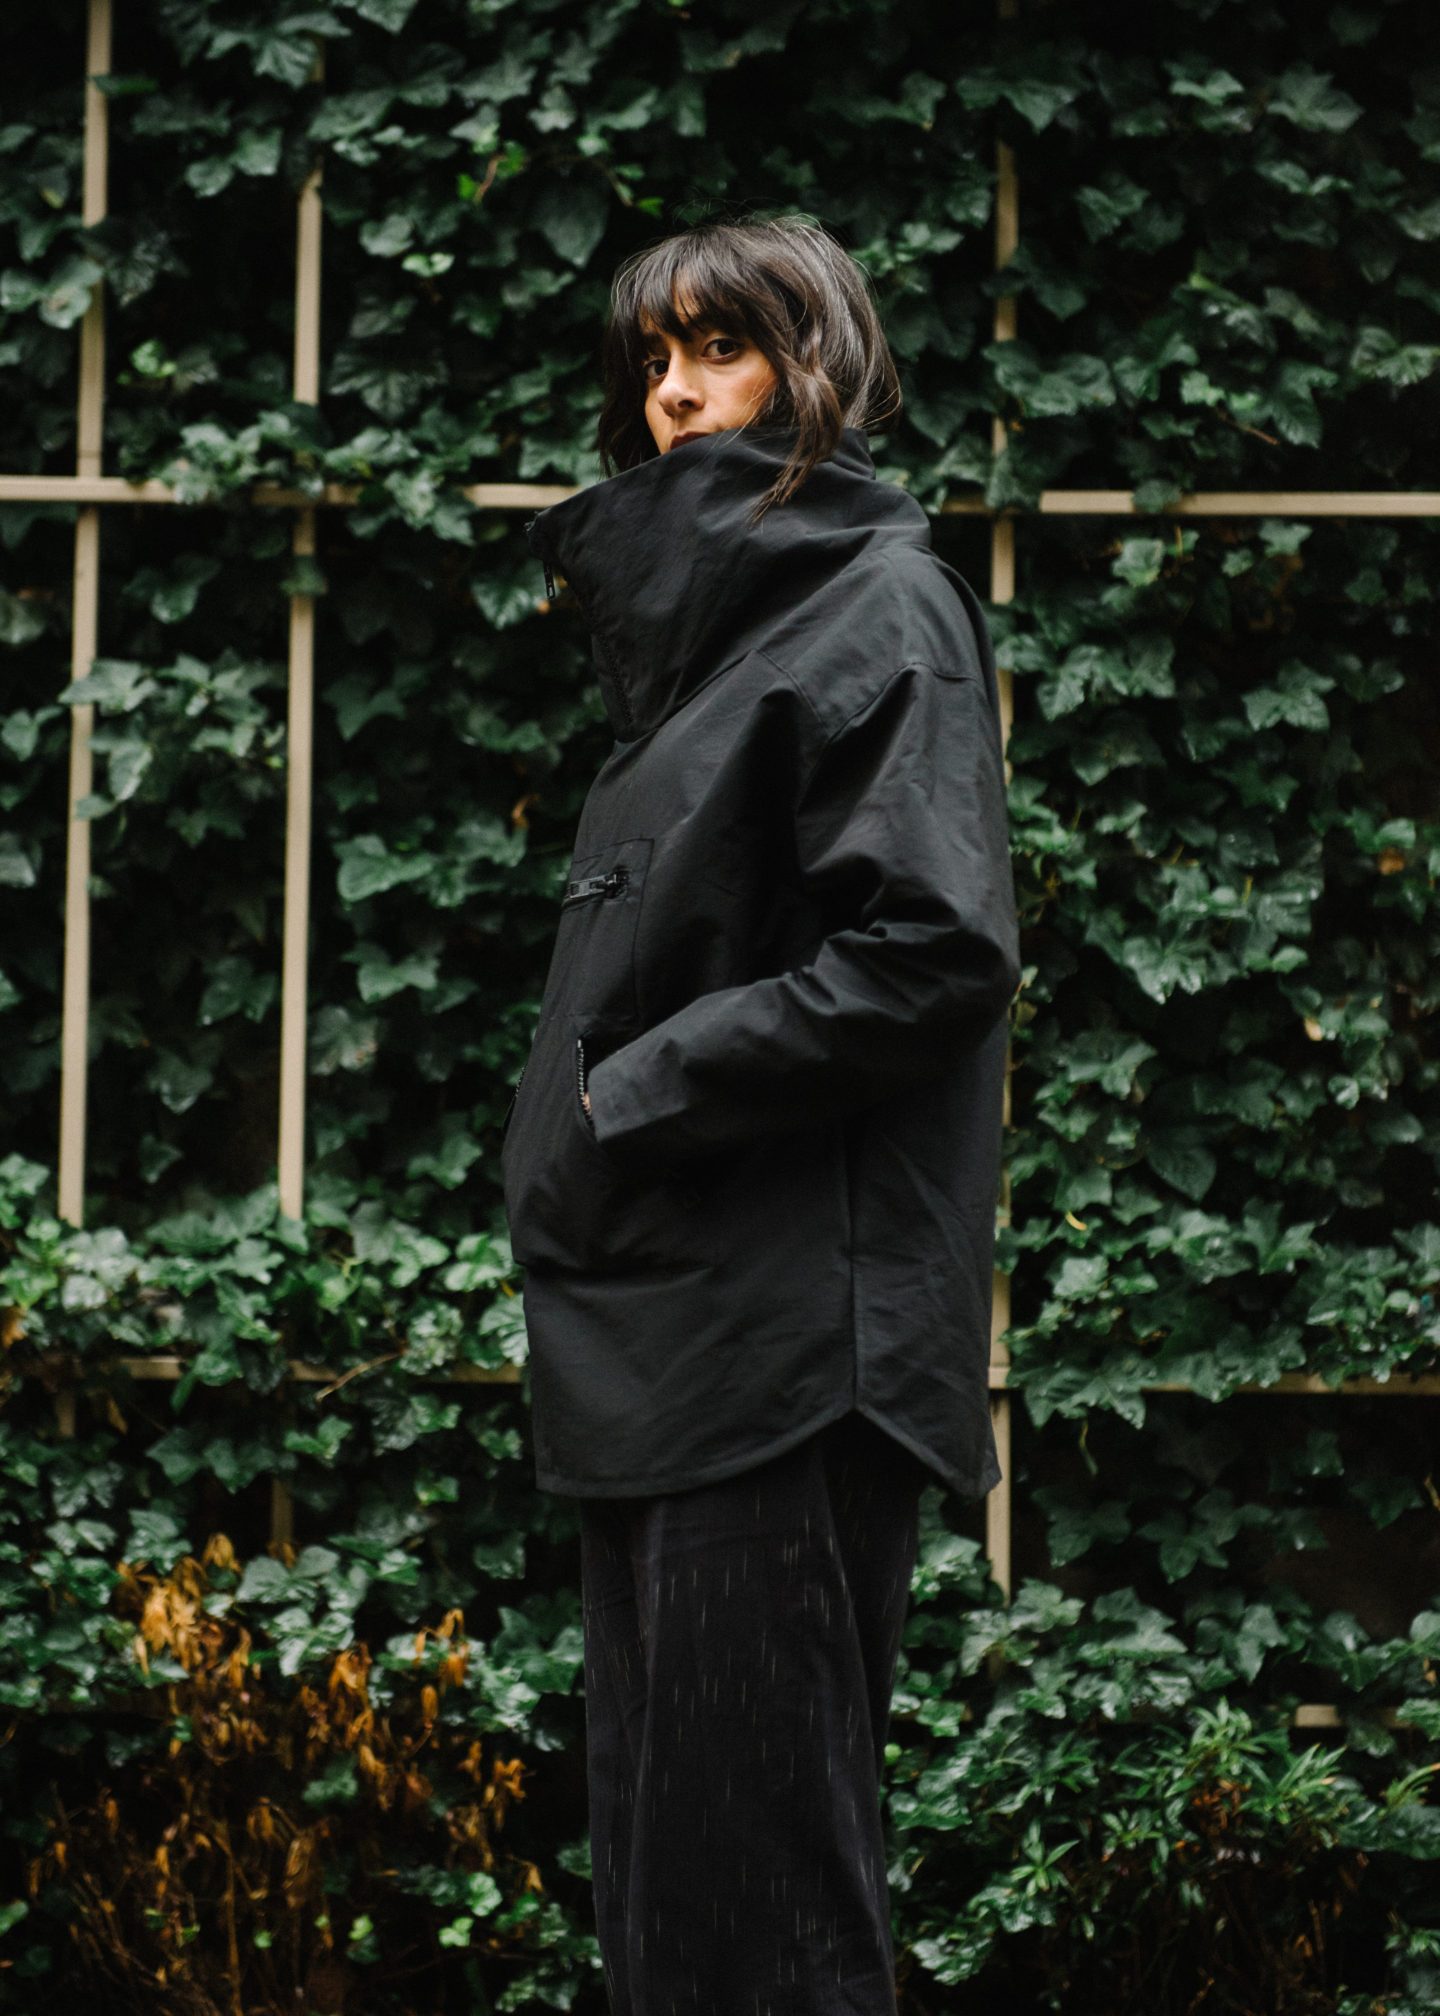 Ethically sourced fashion labels in Vancouver: FUHR co.